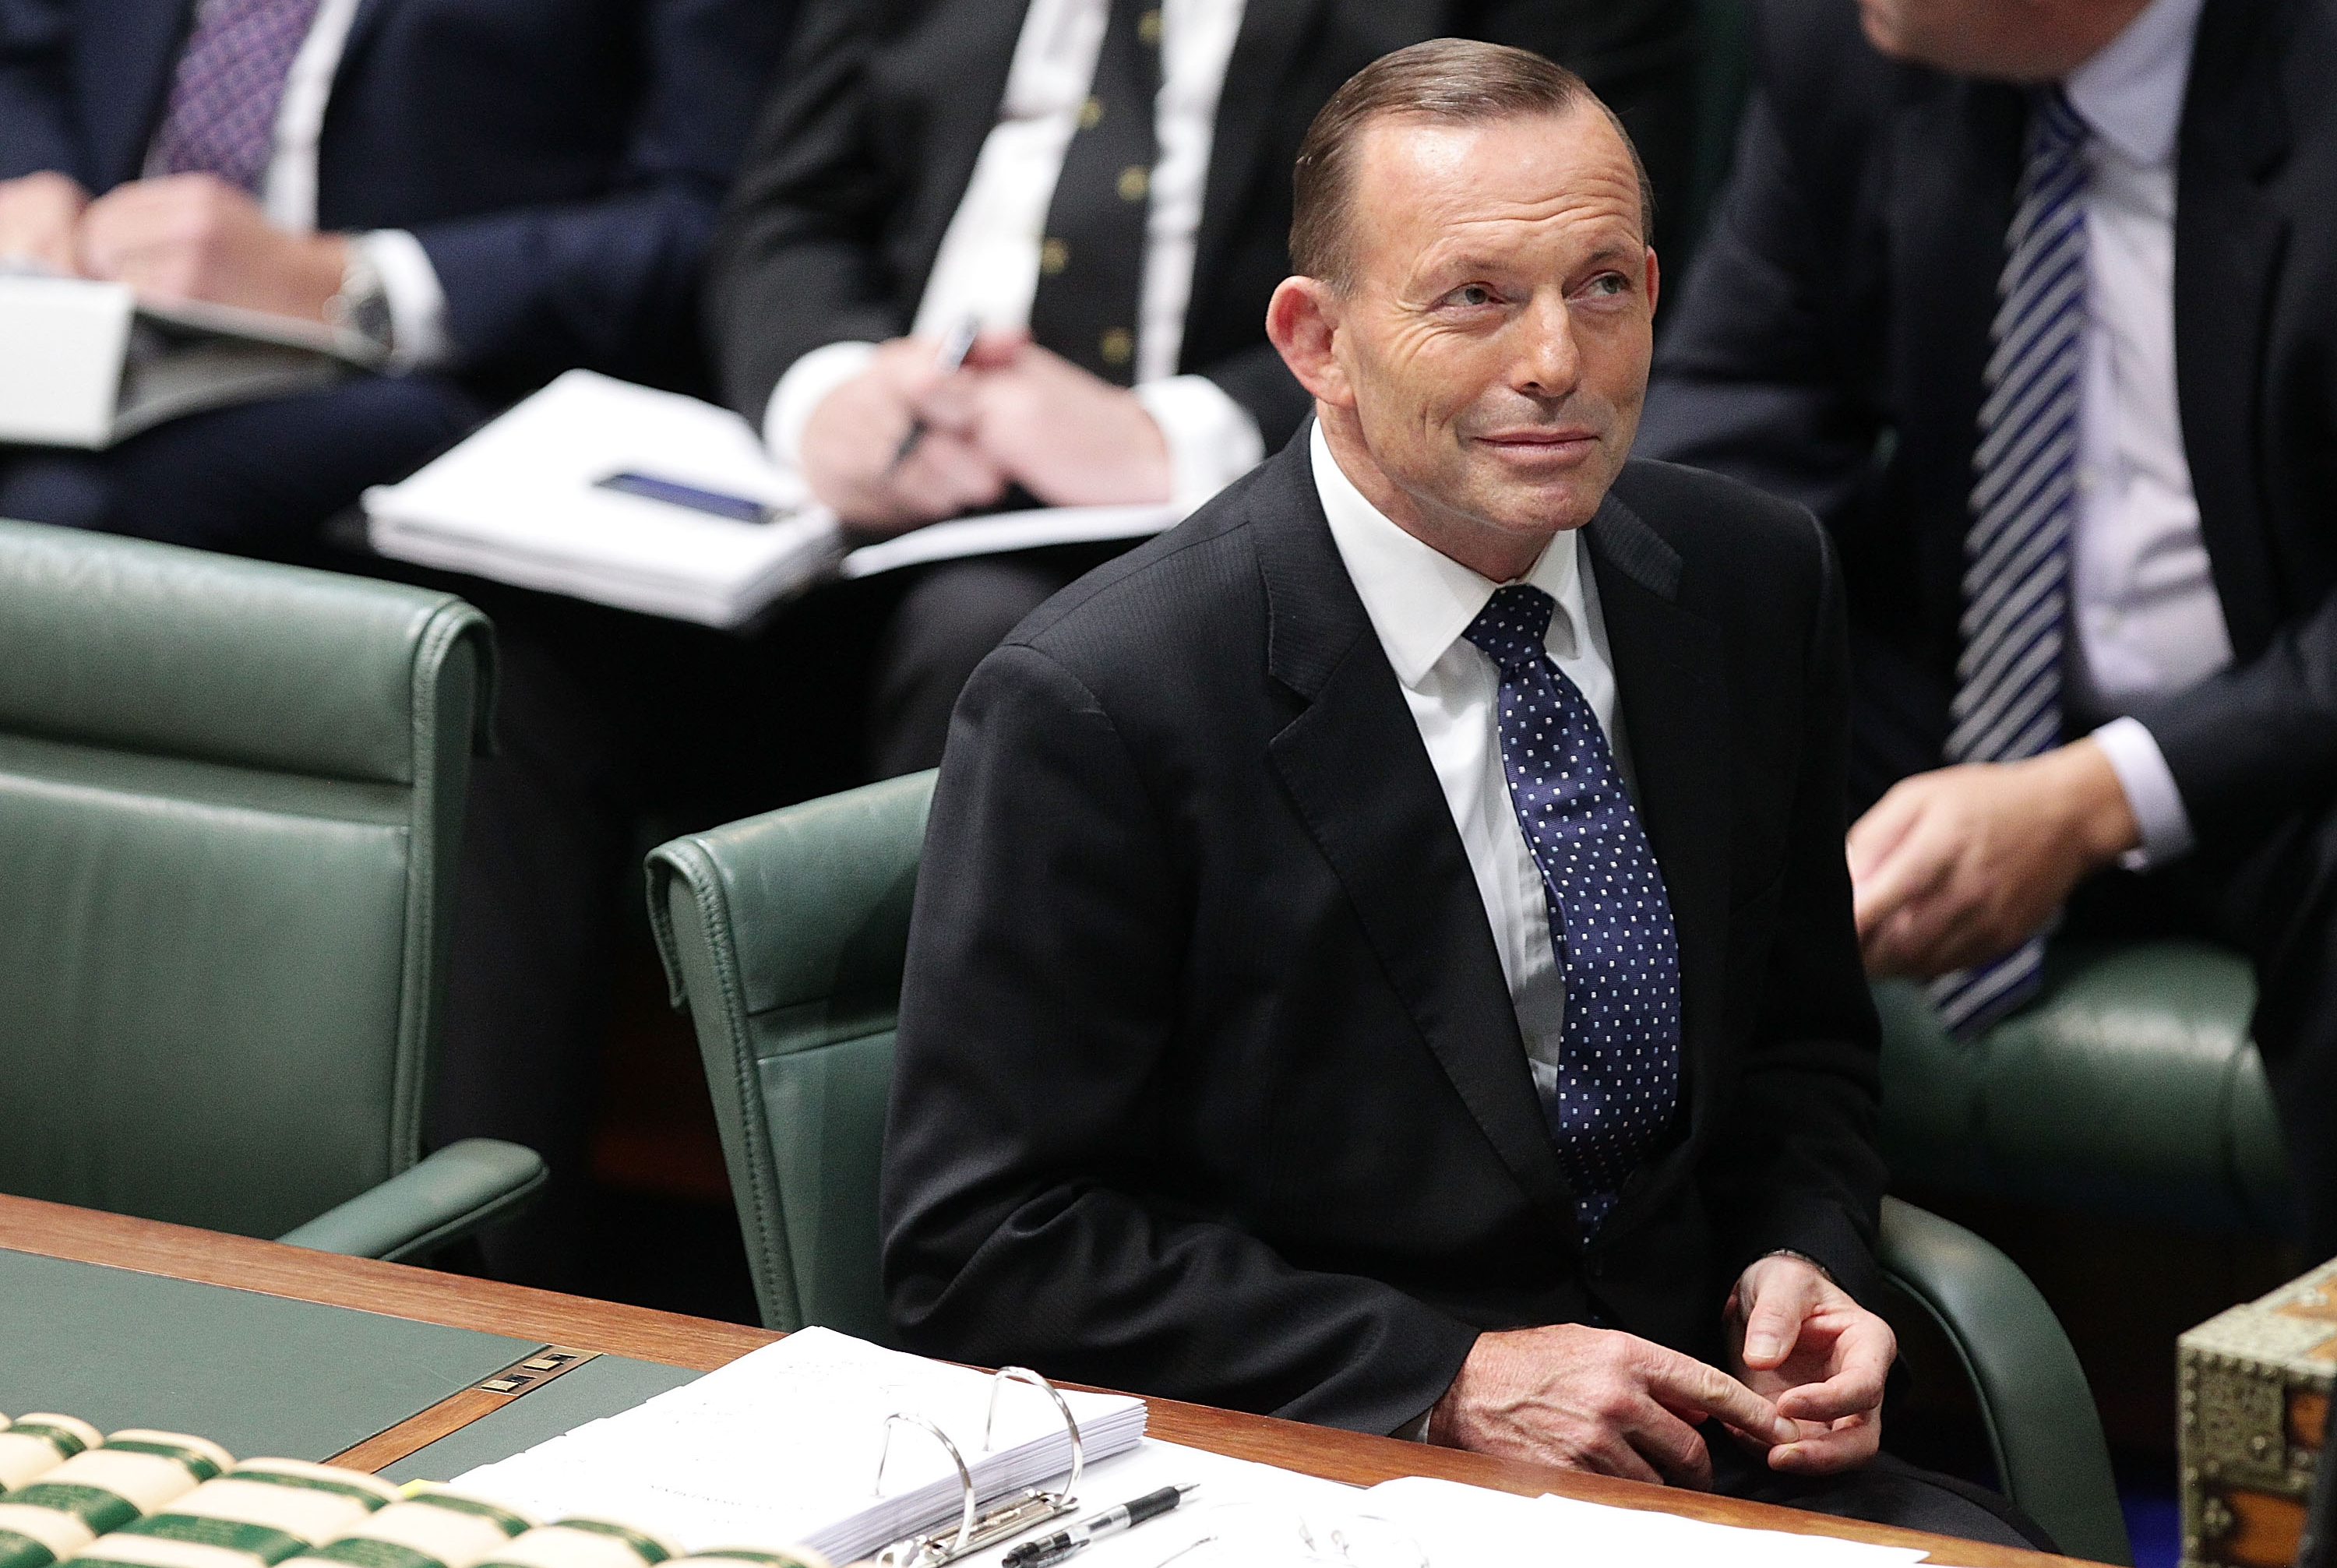 tony abbott ousted as australia's prime minister | ncpr news